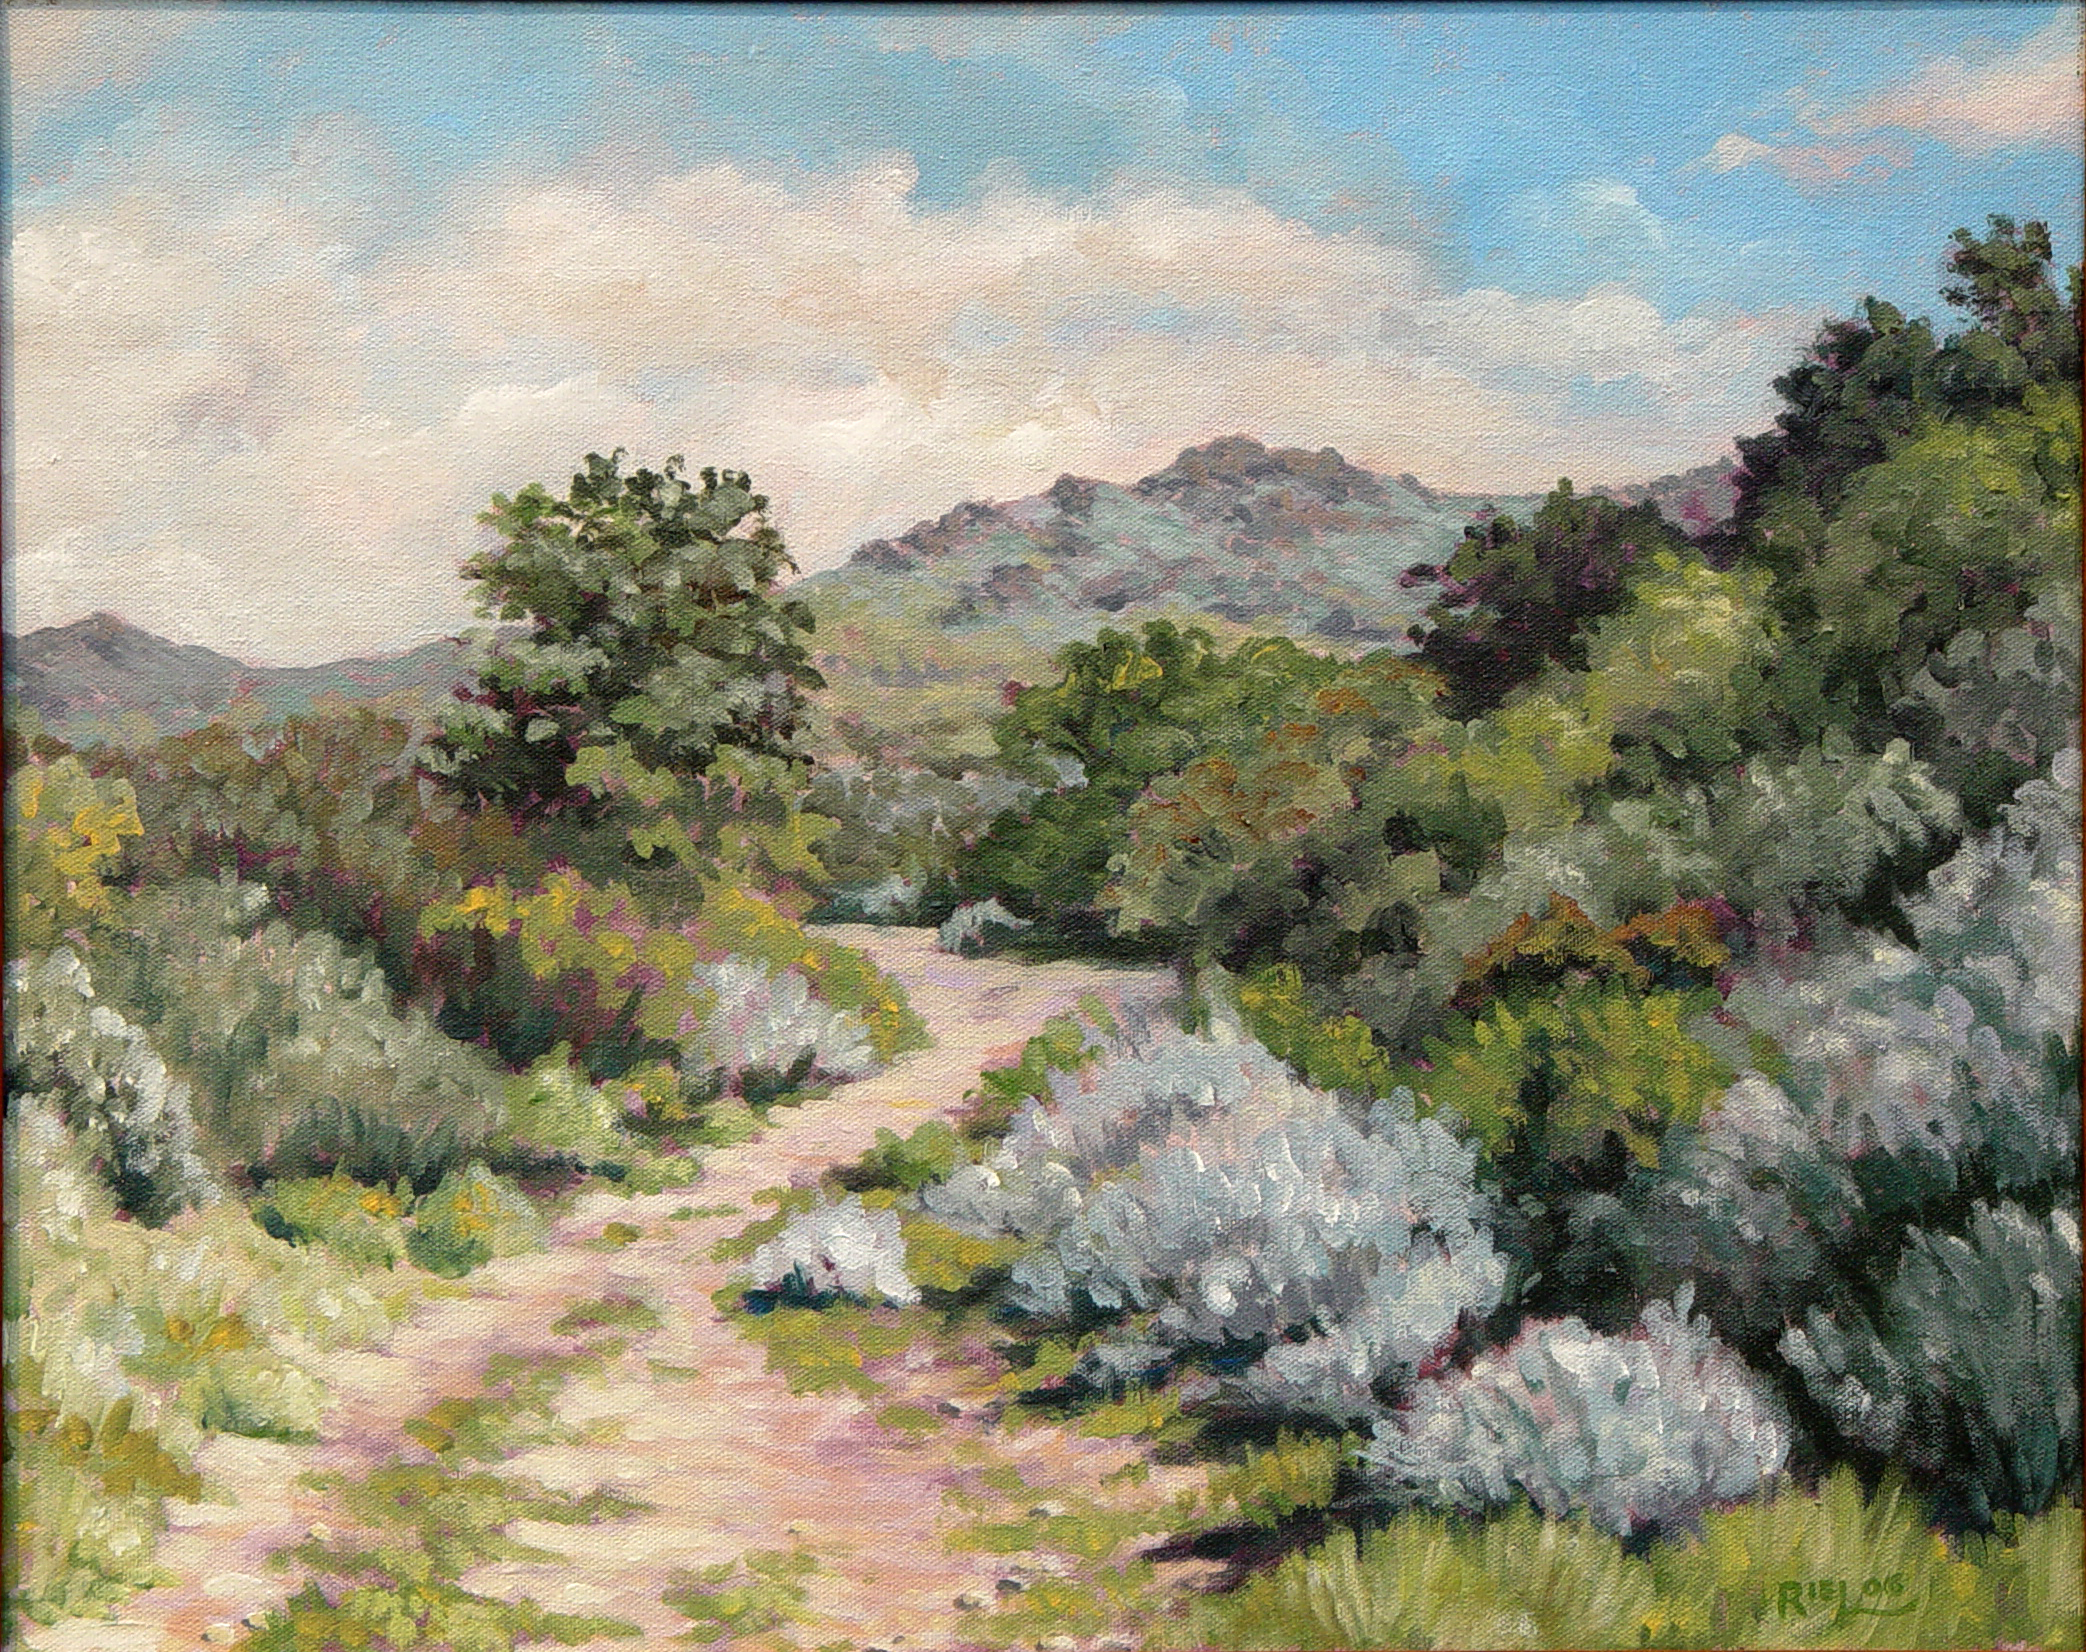 Sycamore Canyon, Early Summer